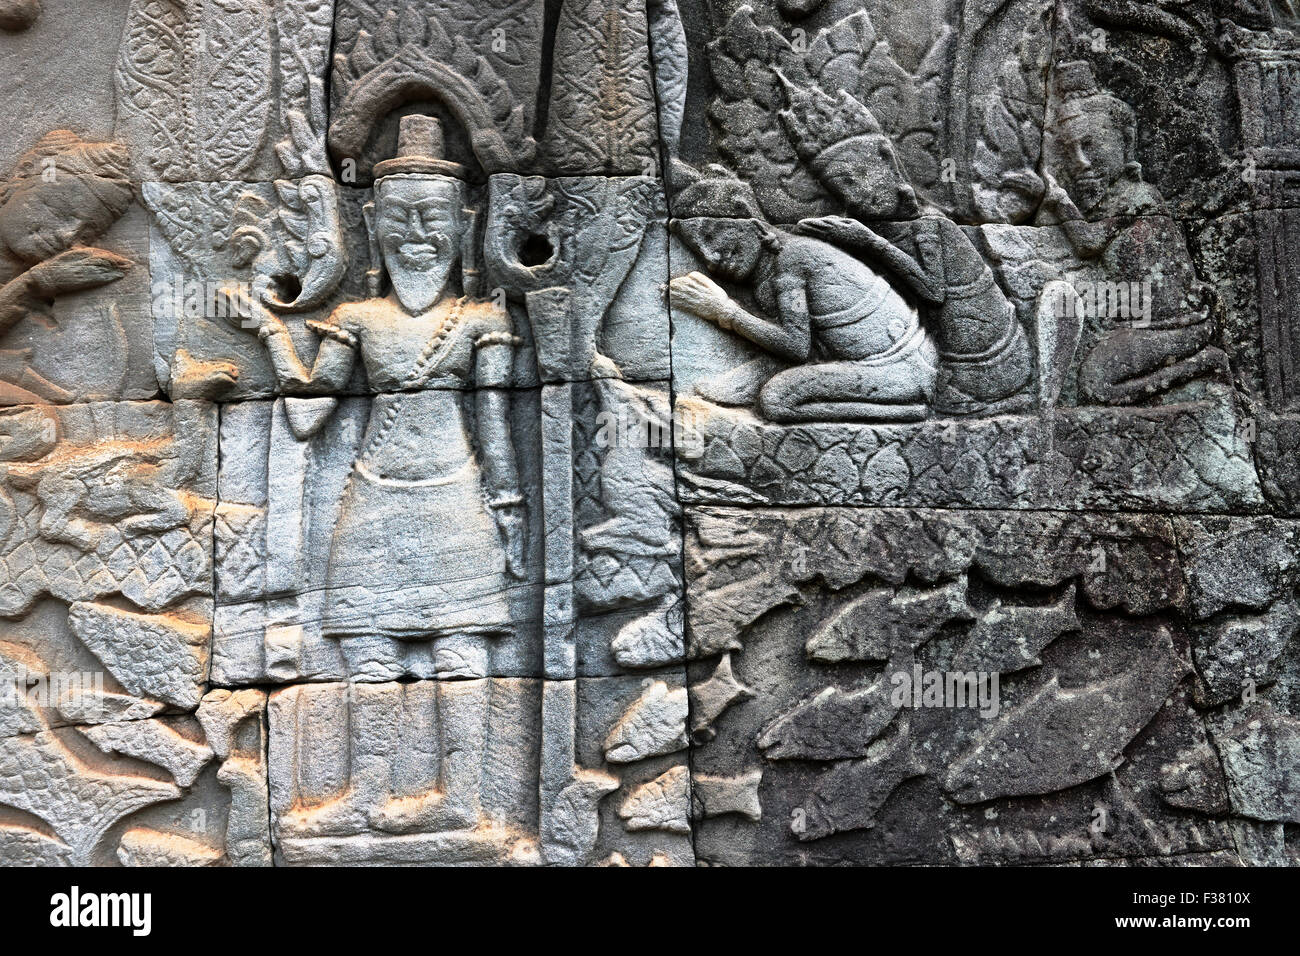 Fragment of bas-relief at Bayon temple. Angkor Archaeological Park, Siem Reap Province, Cambodia. - Stock Image